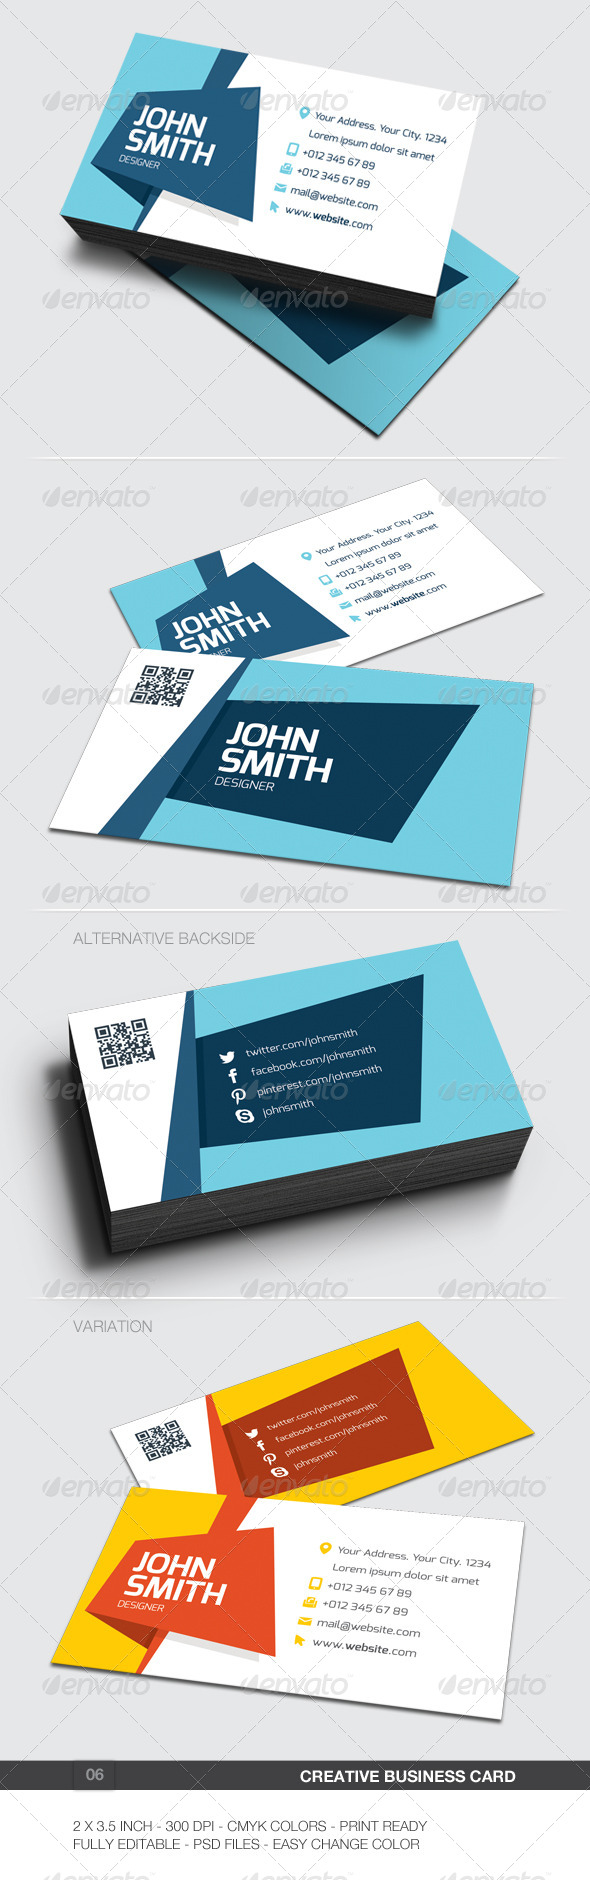 GraphicRiver Creative Business Card 06 5959442